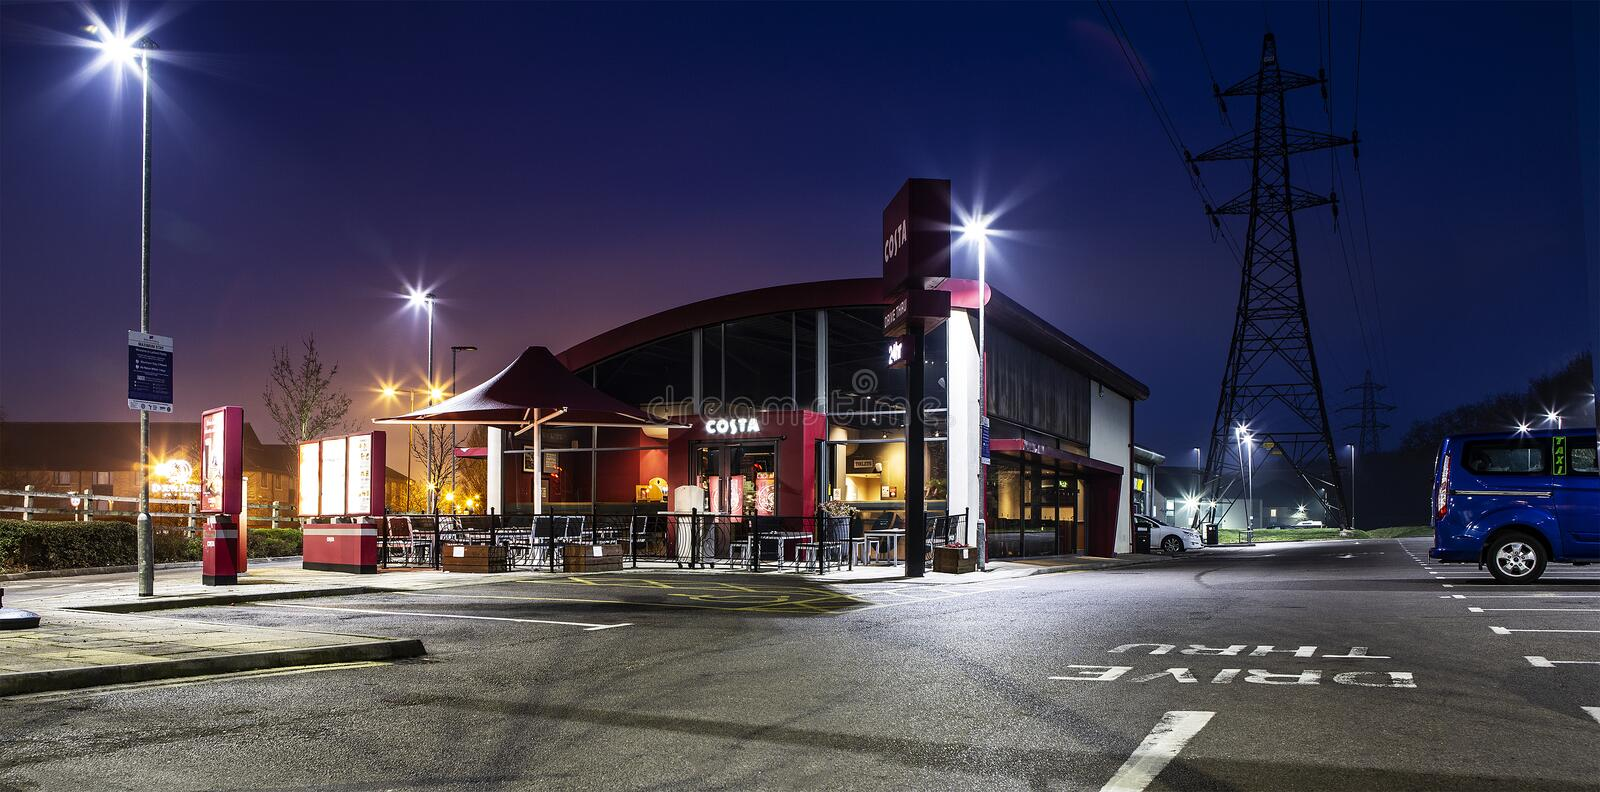 Costa Coffee 24 Hour Drive Thru in West Swindon royalty free stock photo